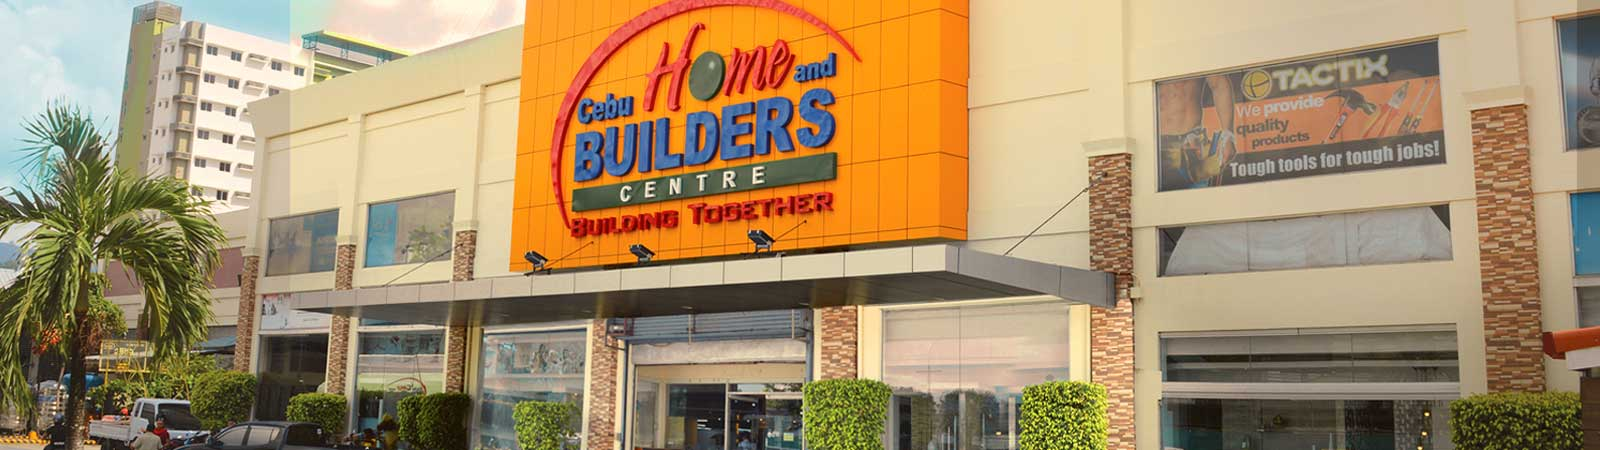 Cebu Home & Builders Centre